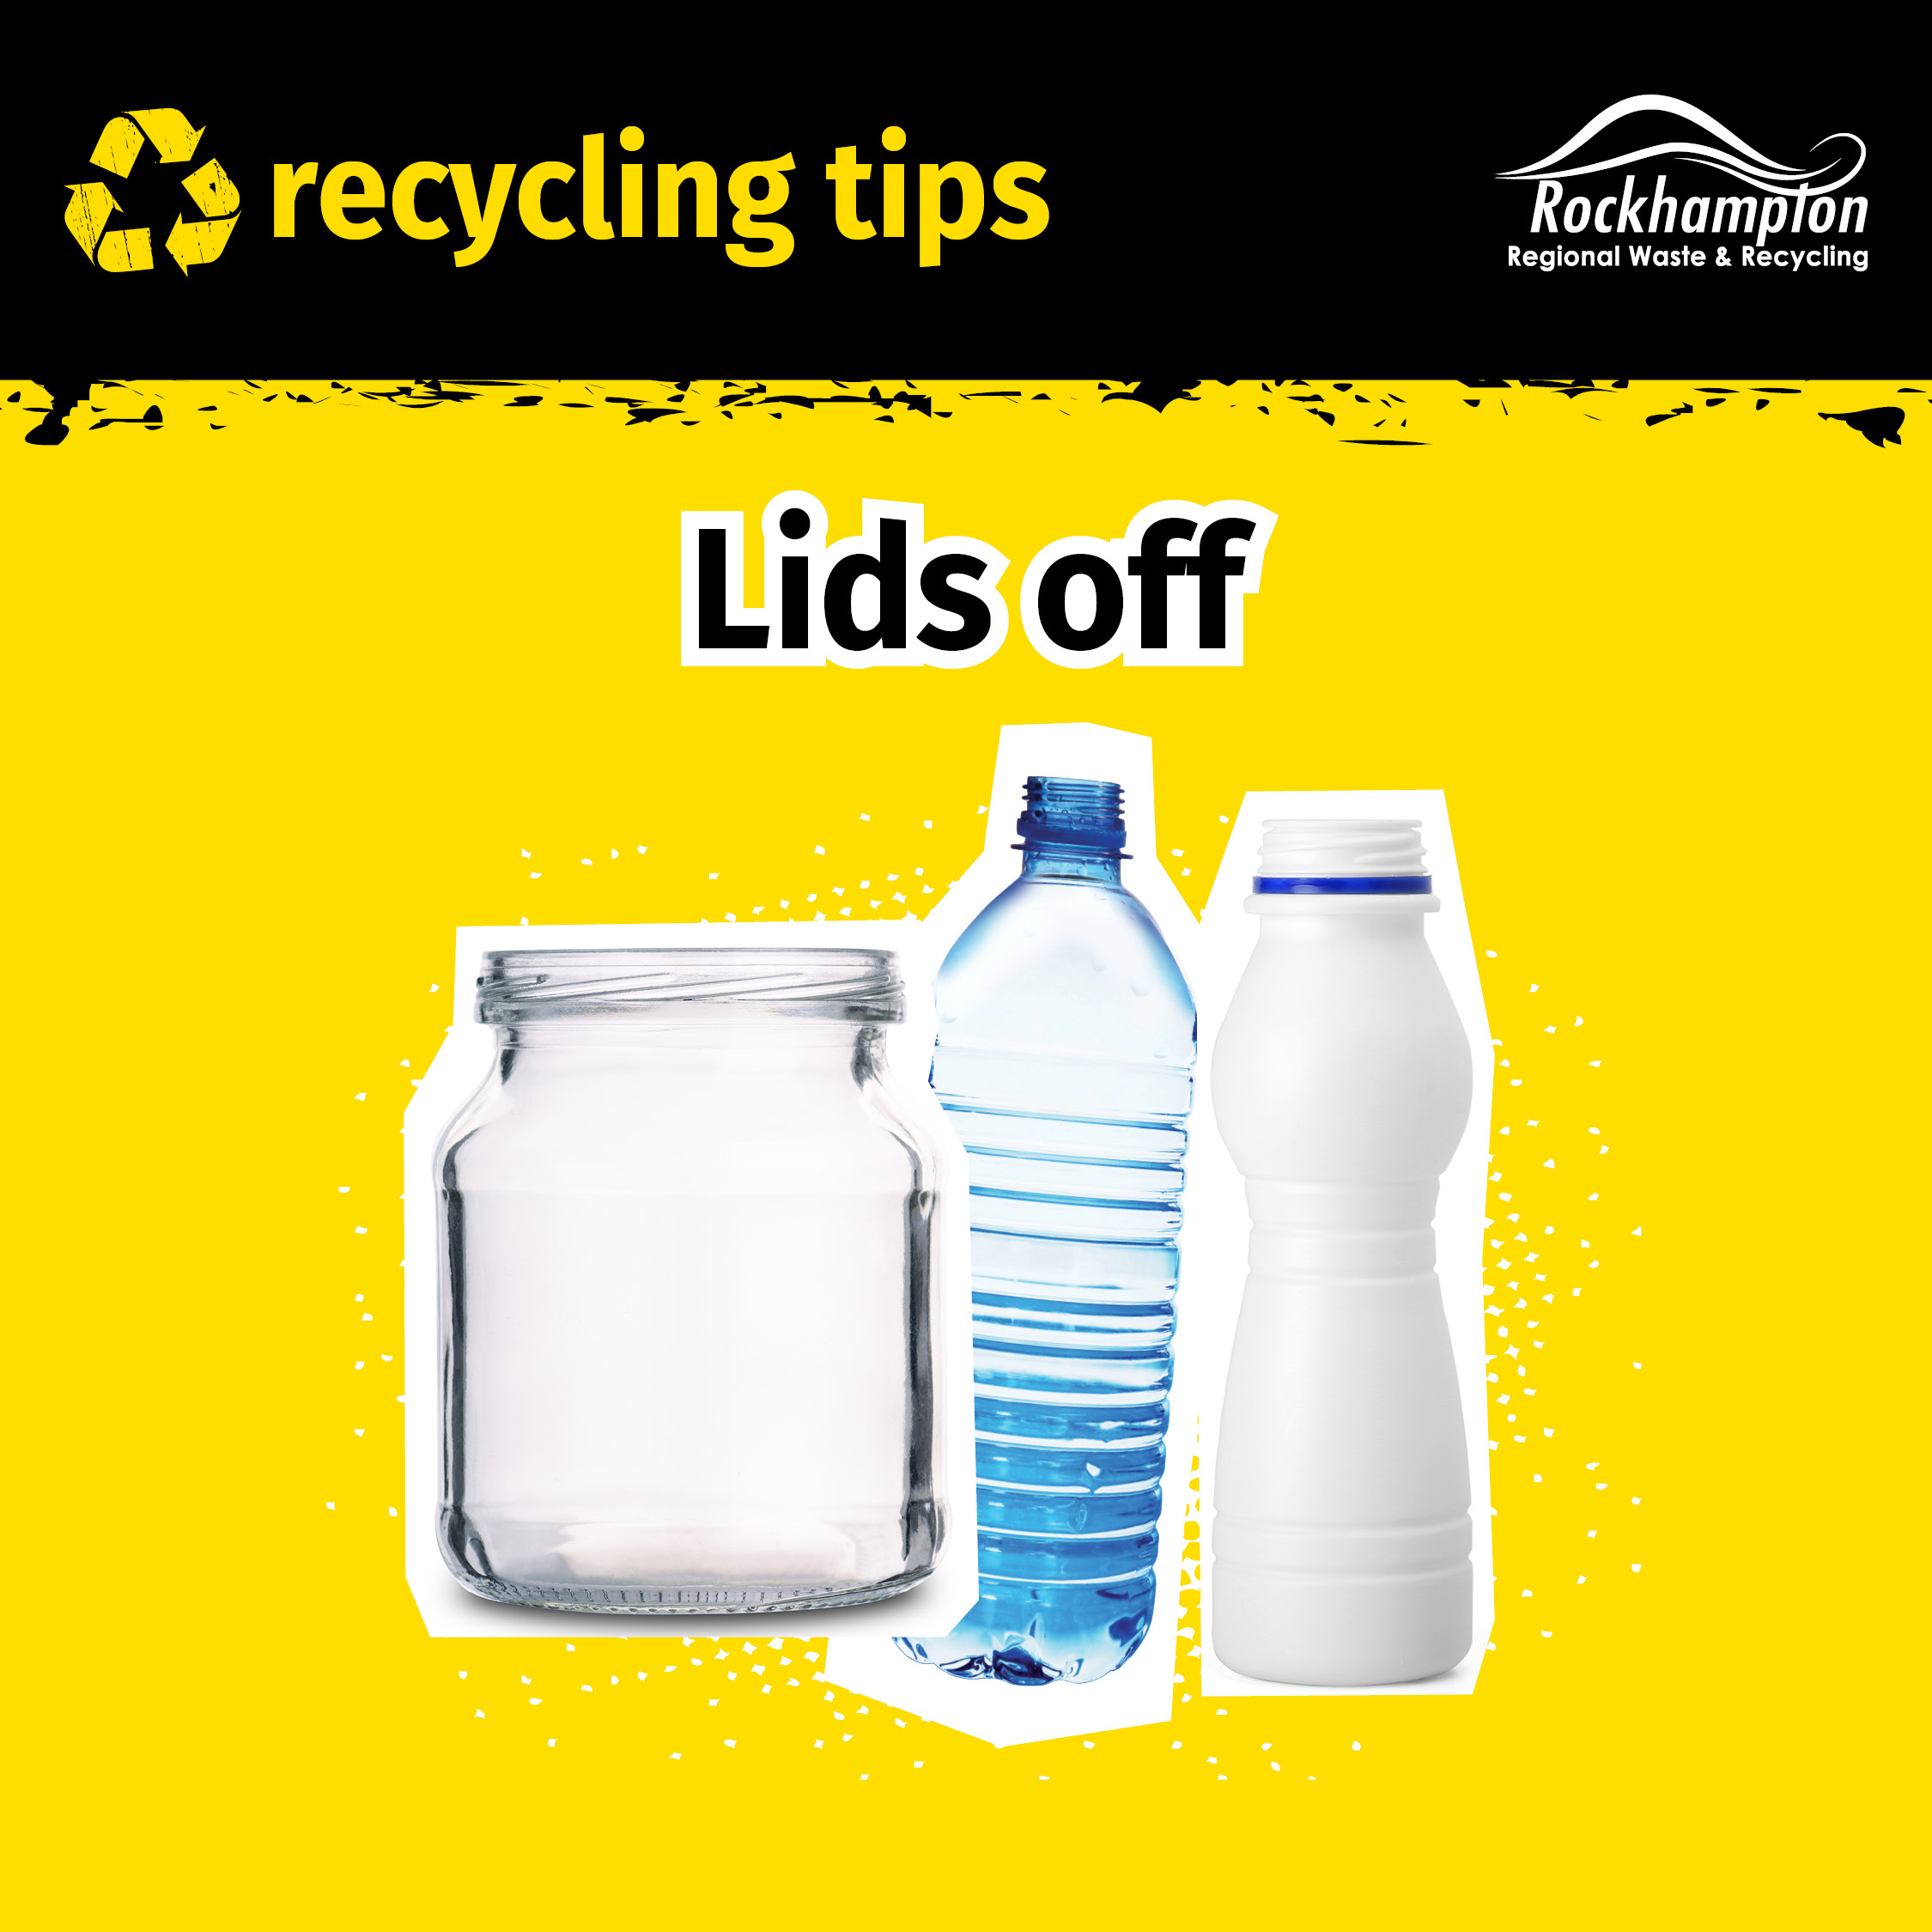 Recycling-Tips-2-Lids-off